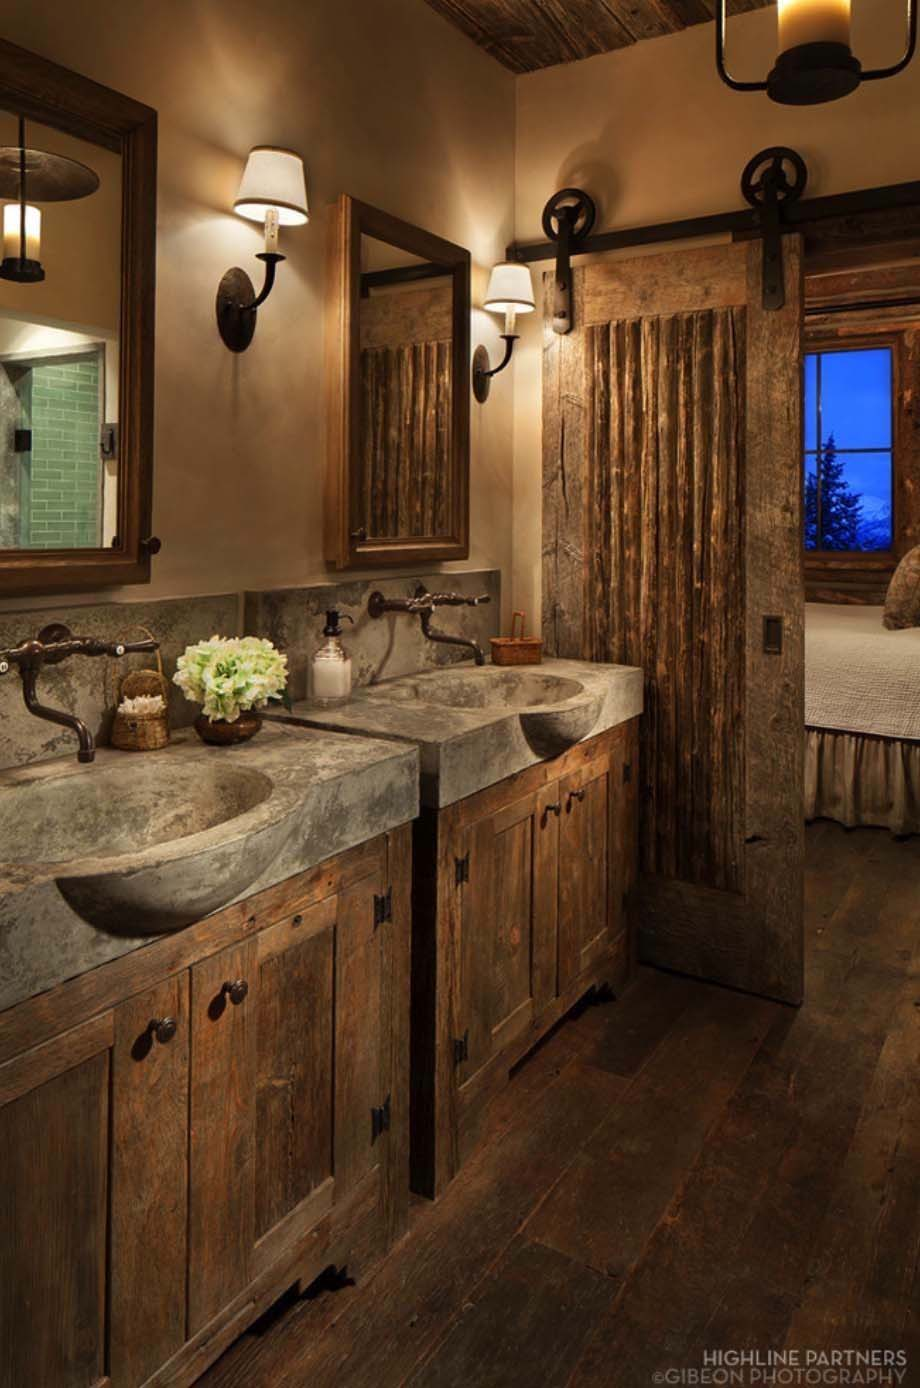 17 inspiring rustic bathroom decor ideas for cozy home 14276